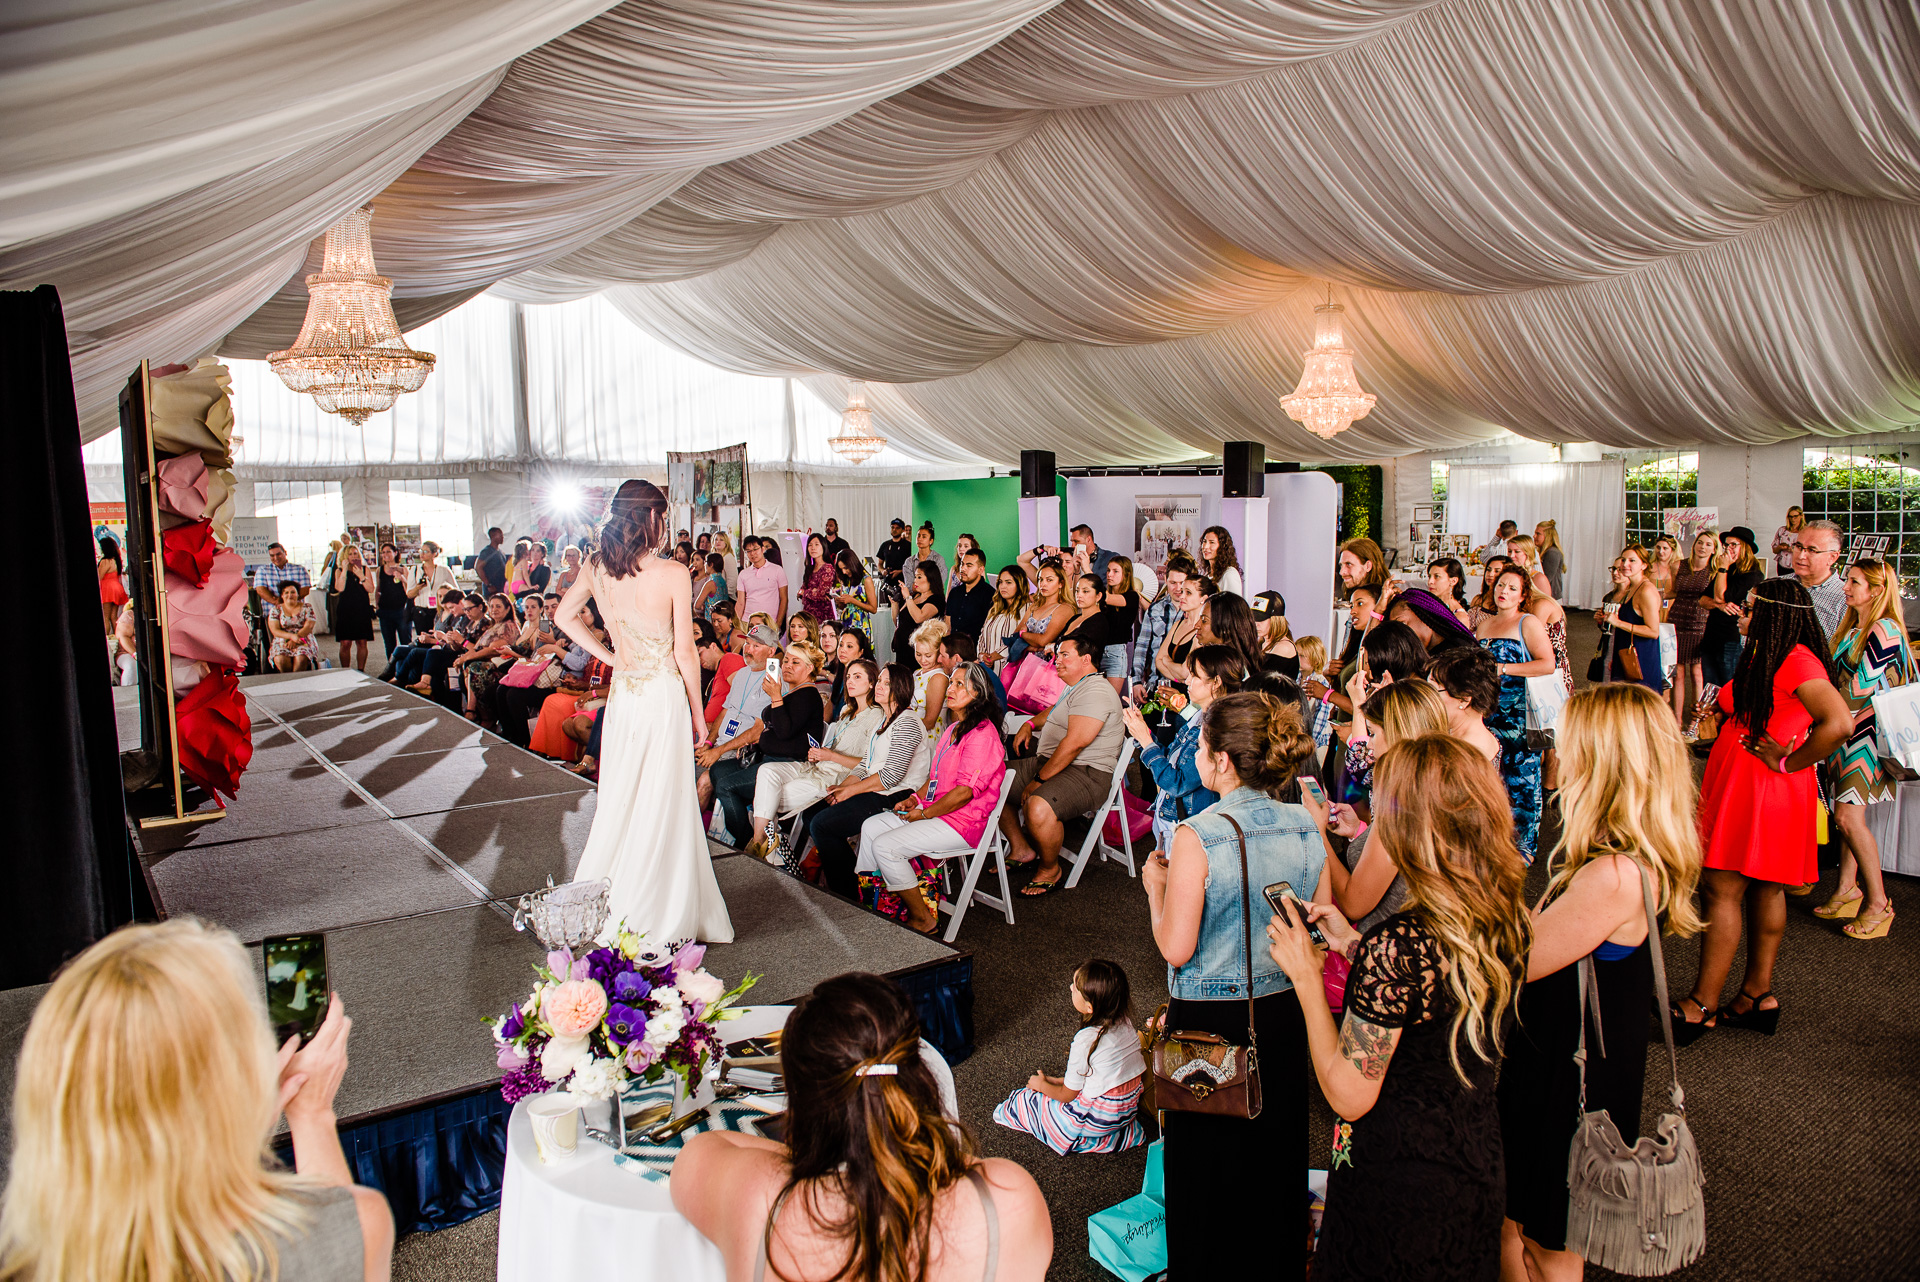 The Regatta Pavilion tent at the Hyatt Regency Mission Bay Resort (our show hosts for the April 23, 2017 [the 42nd!] Wedding Party EXPO) made the perfect spot for our bridal gown fashion show!